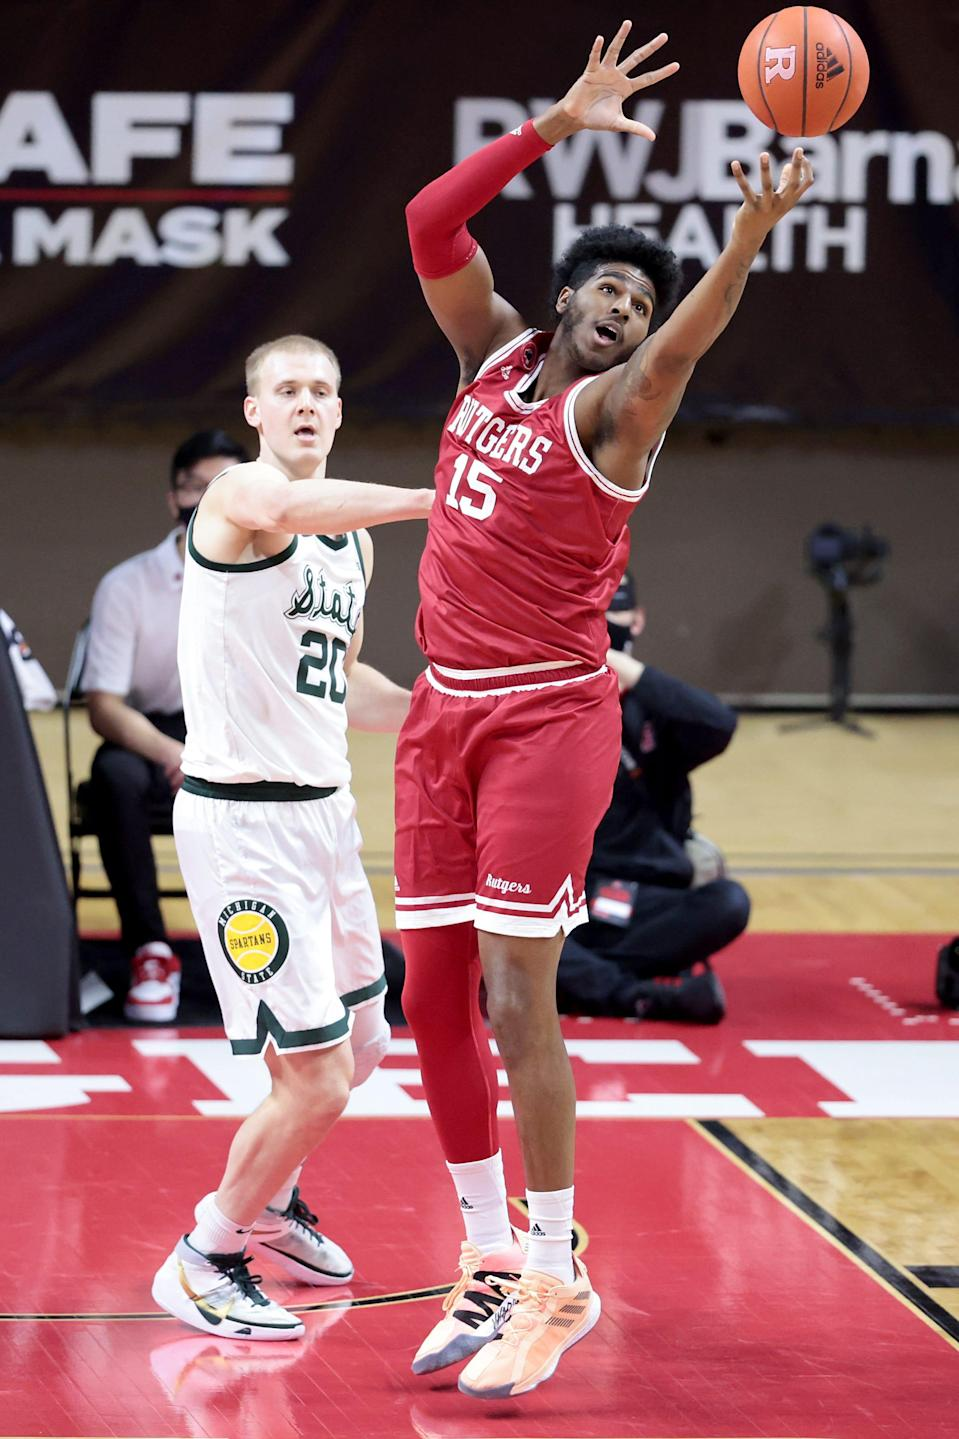 Jan 28, 2021; Piscataway, New Jersey, USA;  Rutgers Scarlet Knights center Myles Johnson (15) jumps for a rebound against Michigan State Spartans forward Joey Hauser (20) during the first half at Rutgers Athletic Center (RAC). Mandatory Credit: Vincent Carchietta-USA TODAY Sports